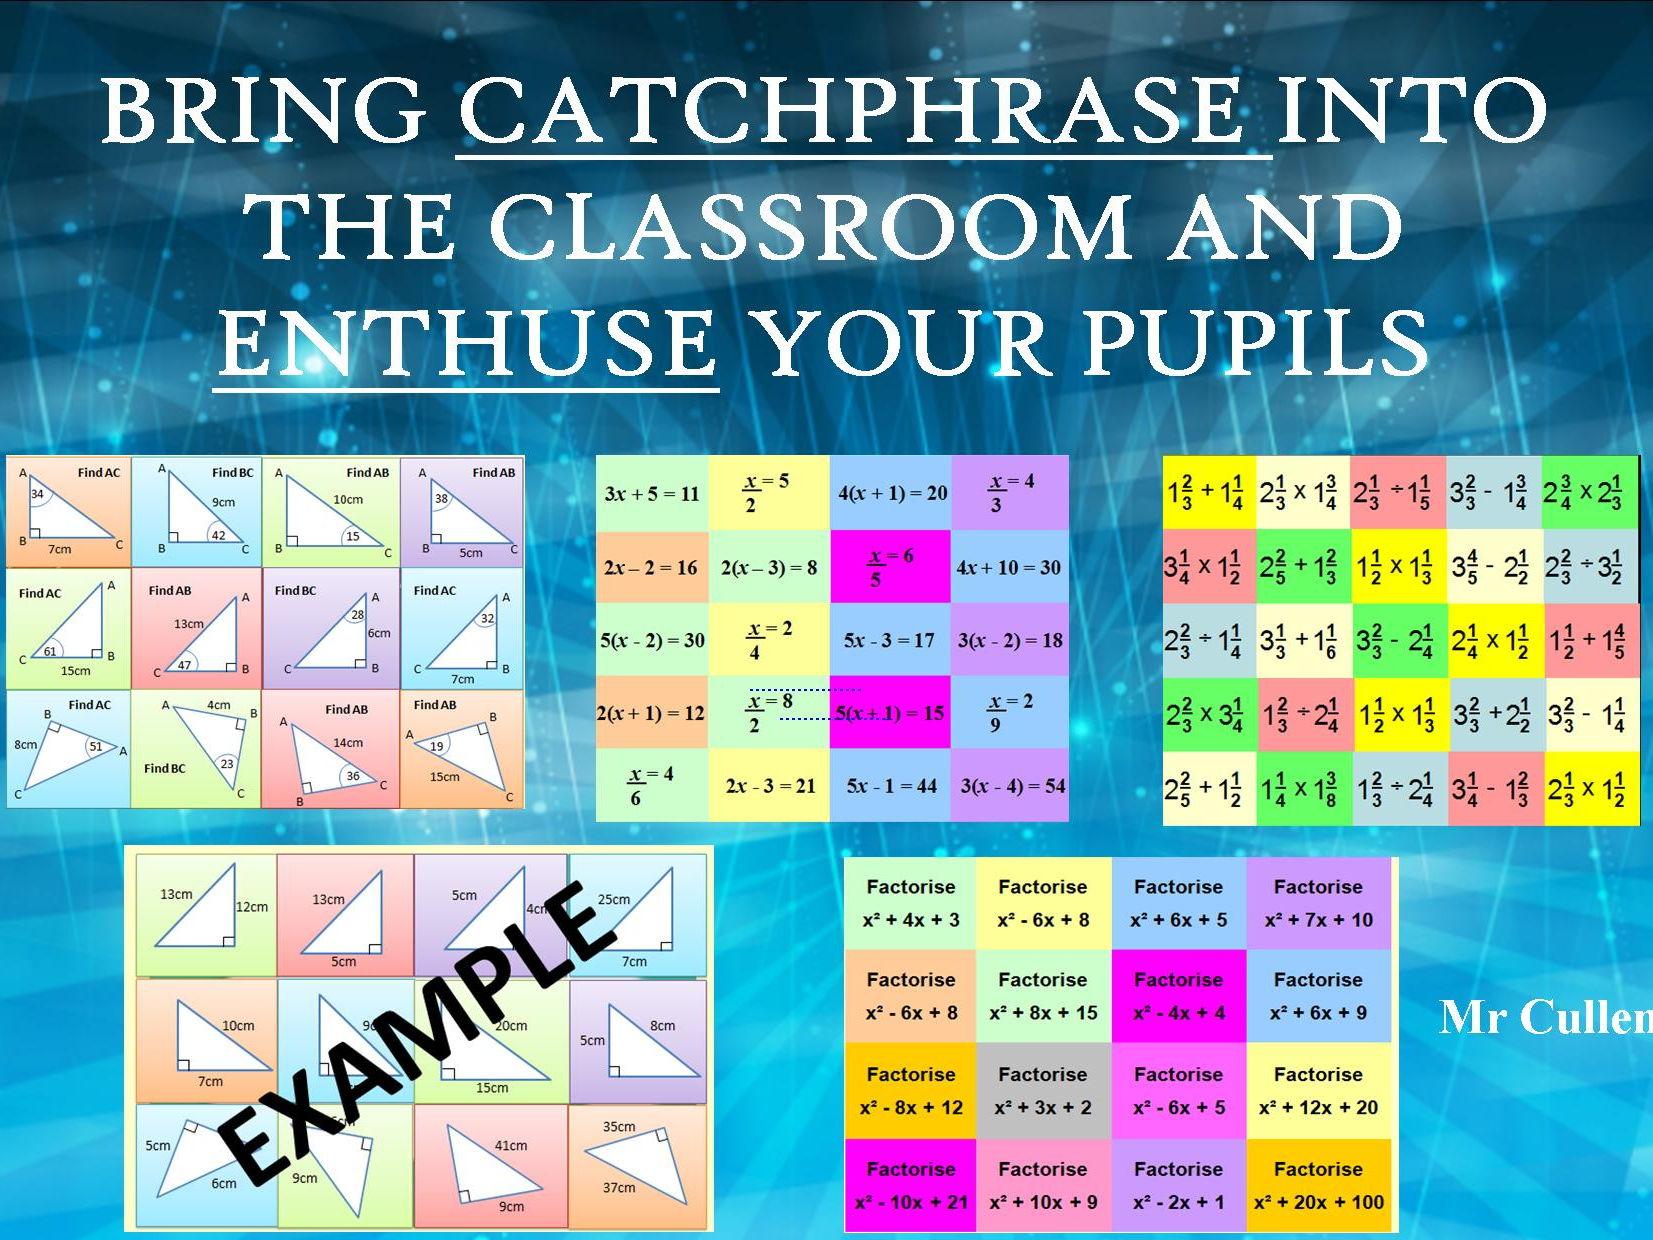 GCSE Revision and Catchphrase activities